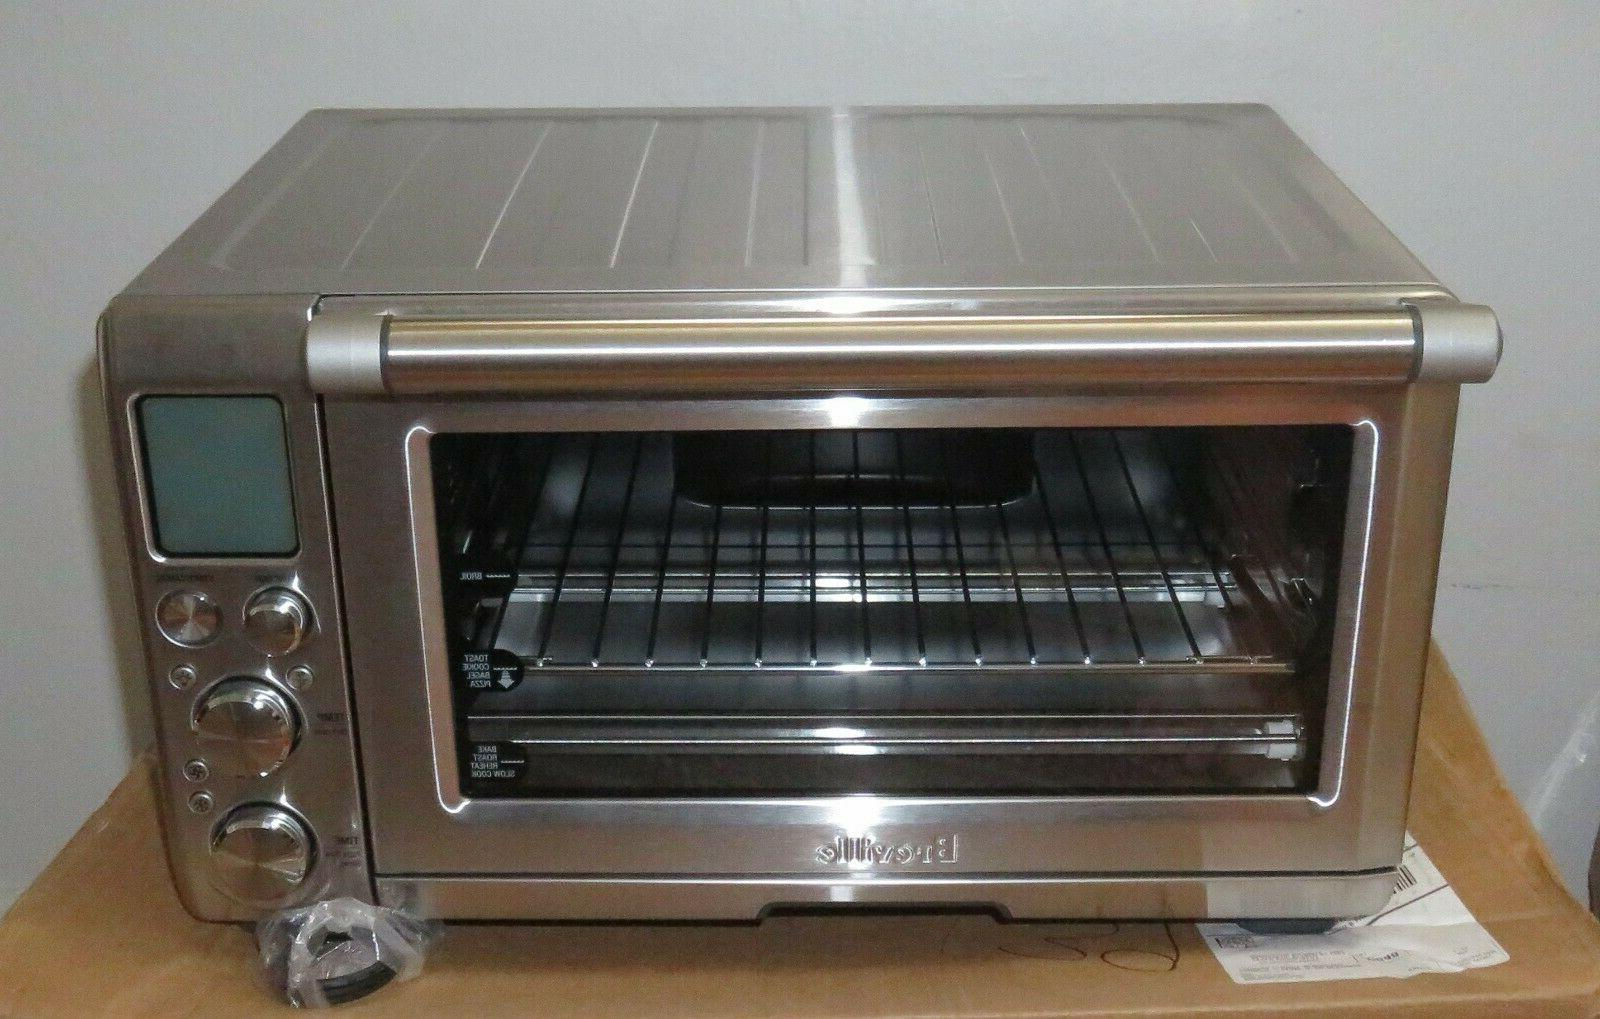 bov845bss the smart oven pro 1800w convection